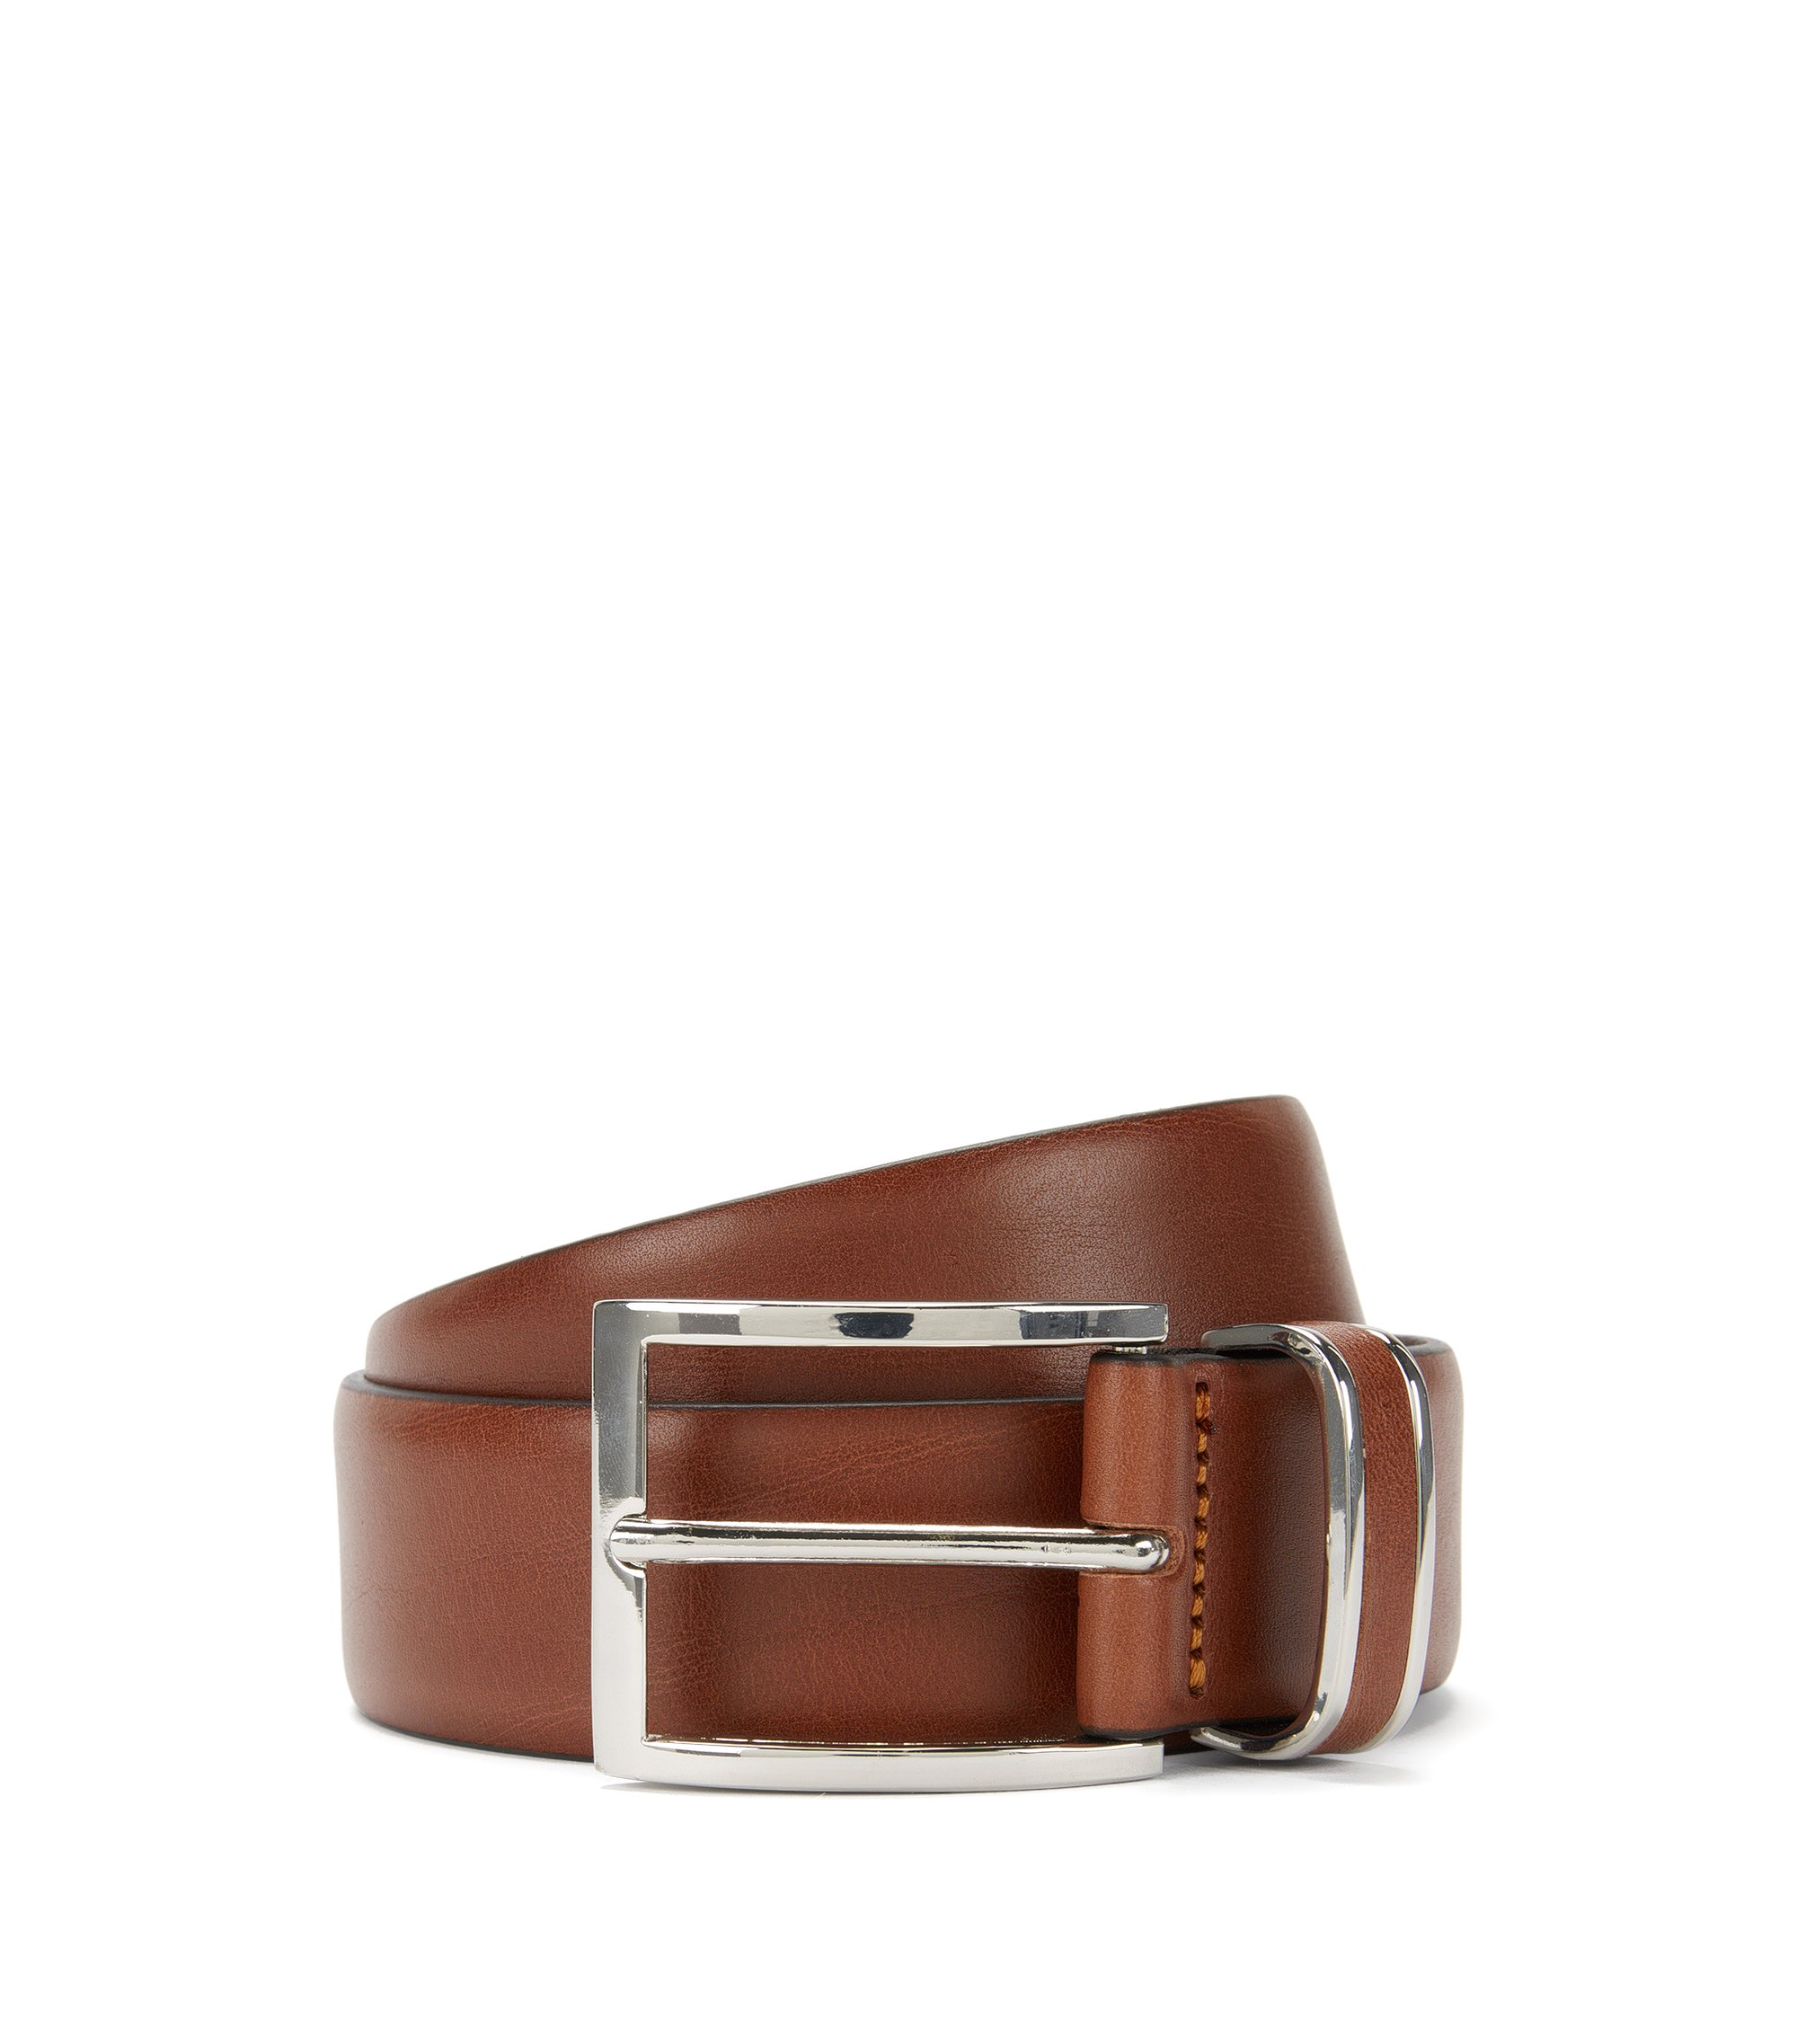 Leather belt with metal-trimmed keeper, Brown